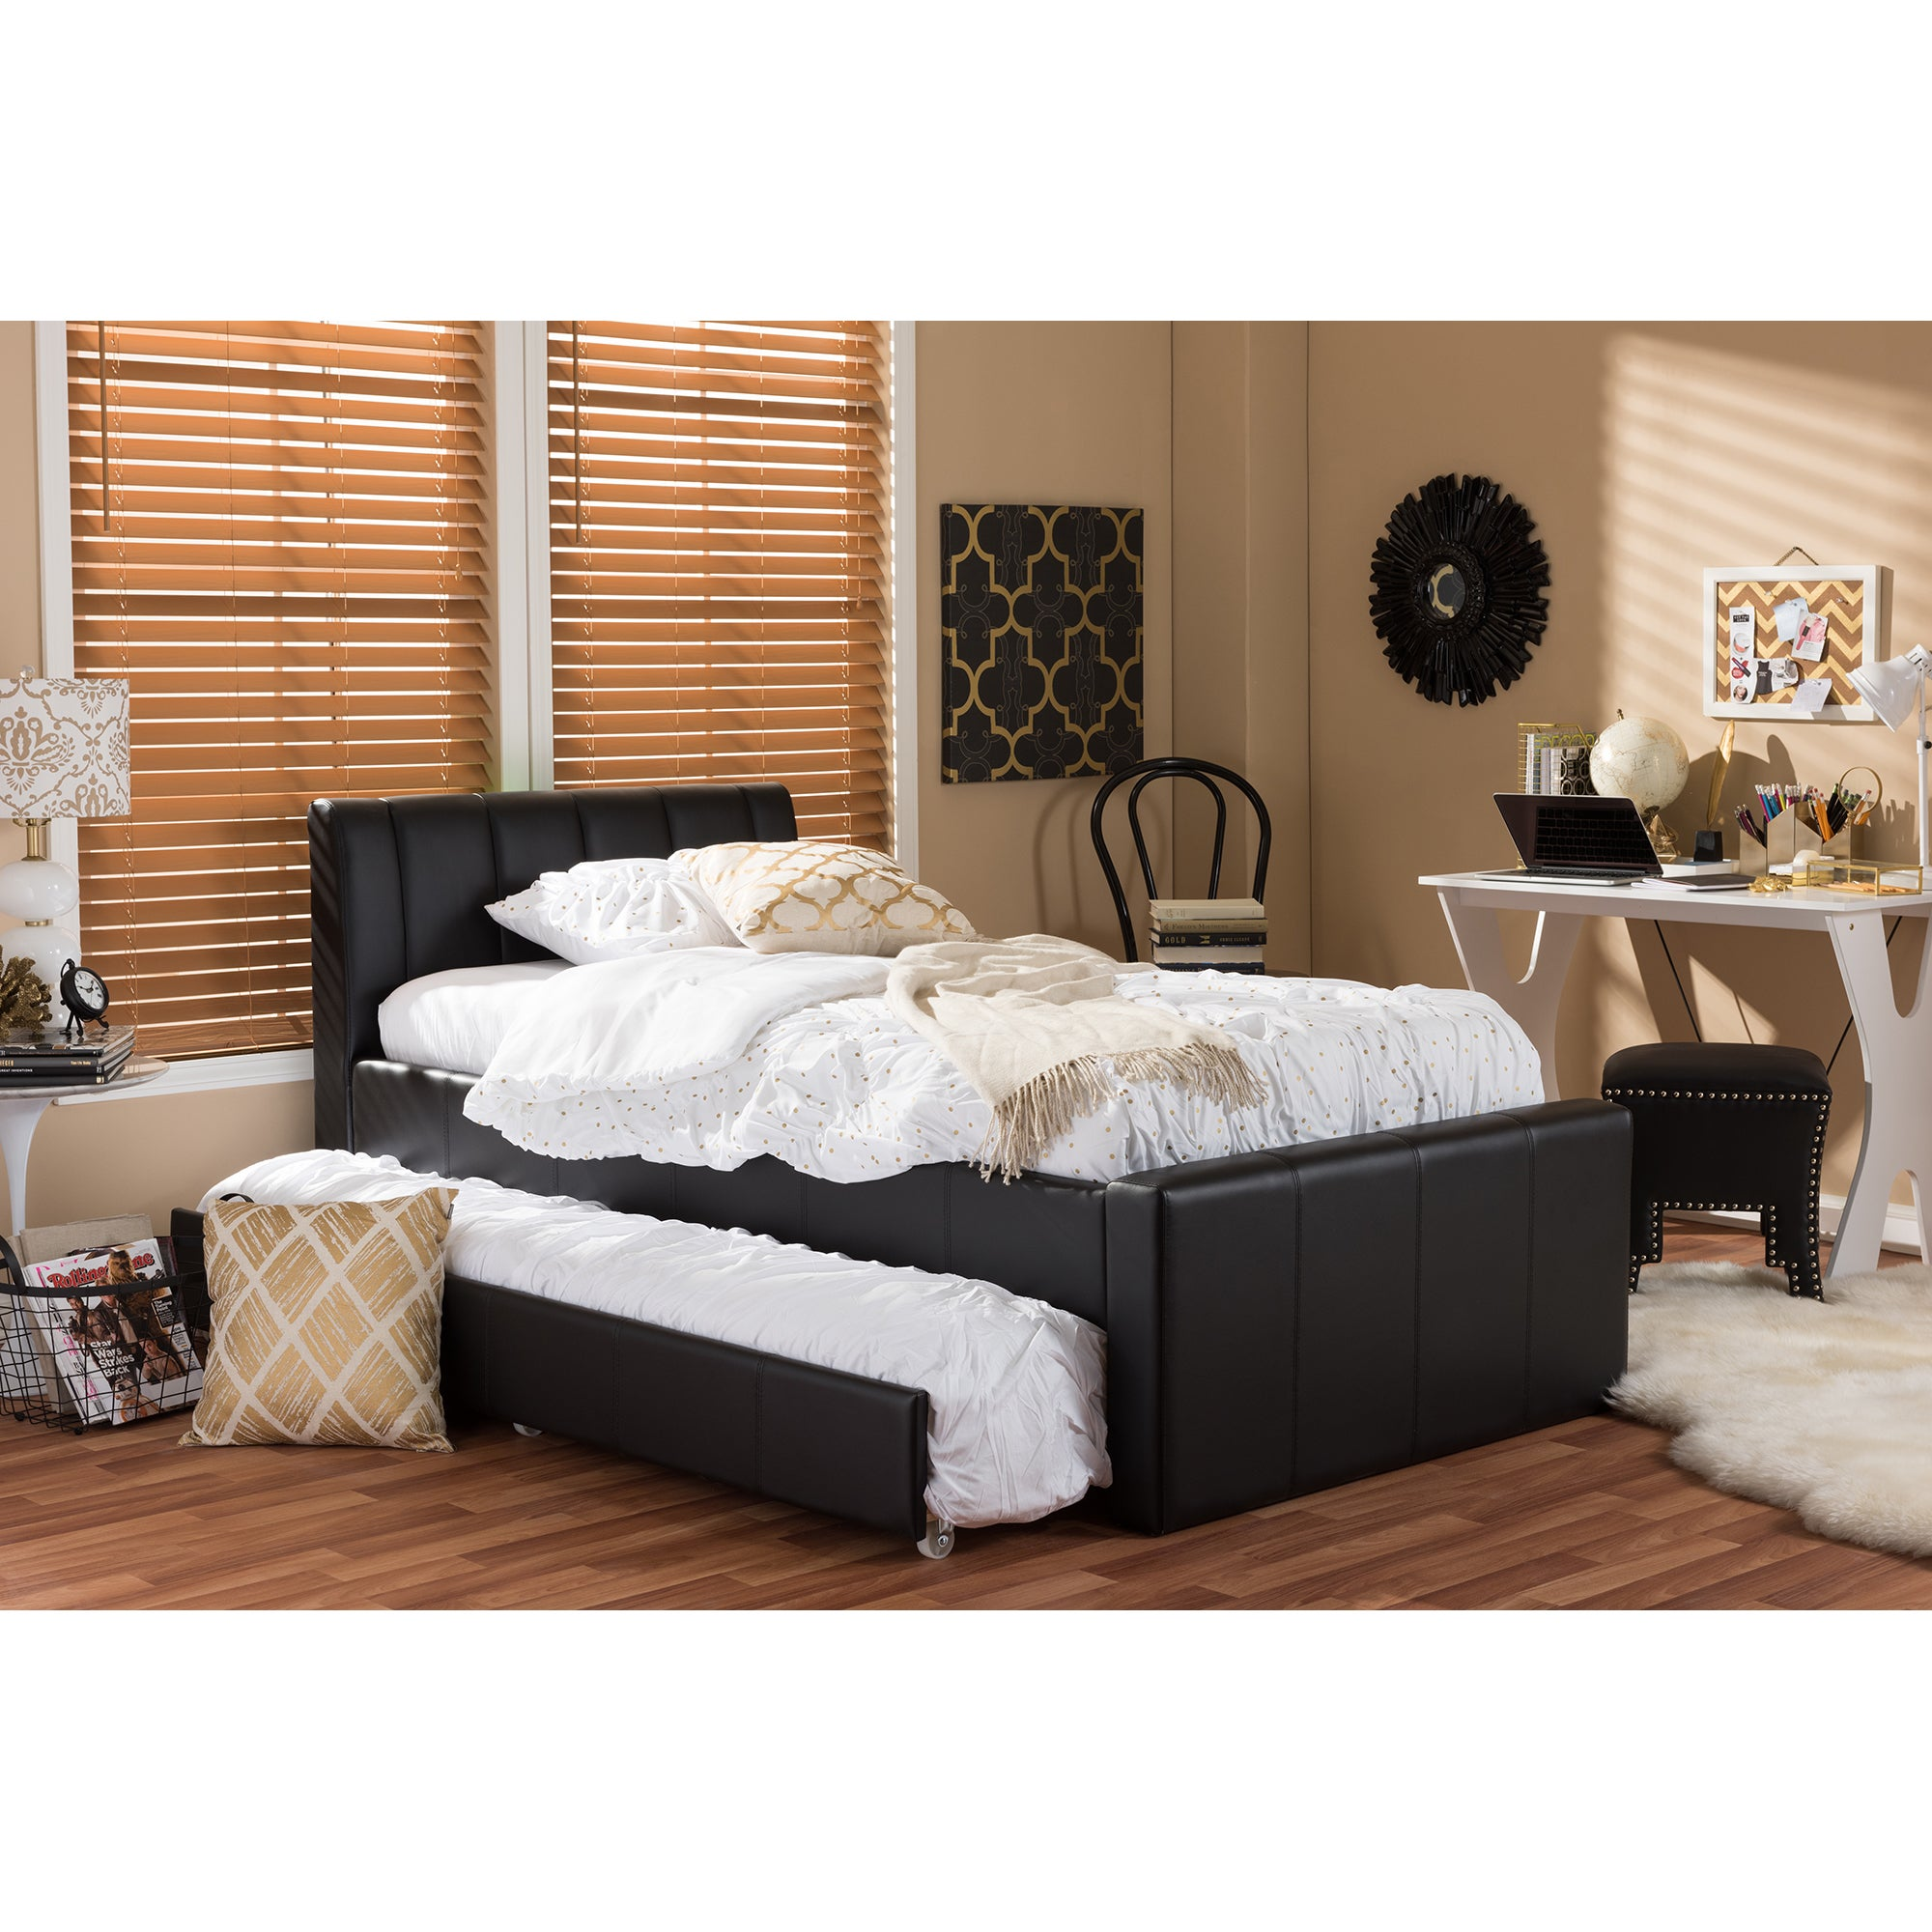 bed frame daybed nightfall twin iowa futon shop closed trundle city w product